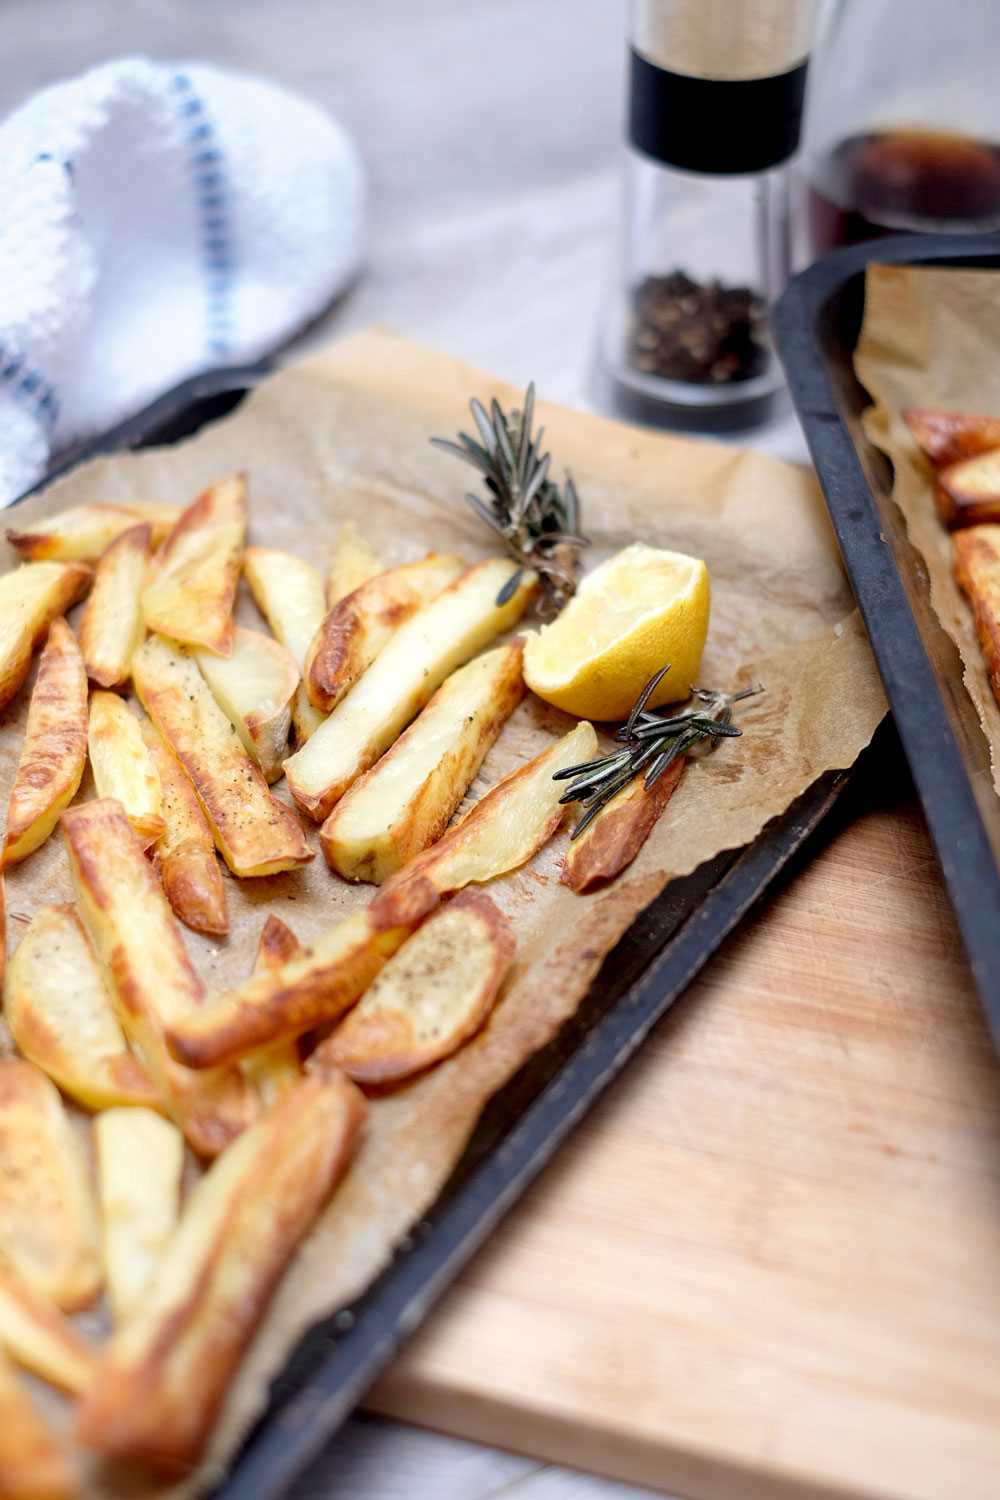 Oil free oven baked fries